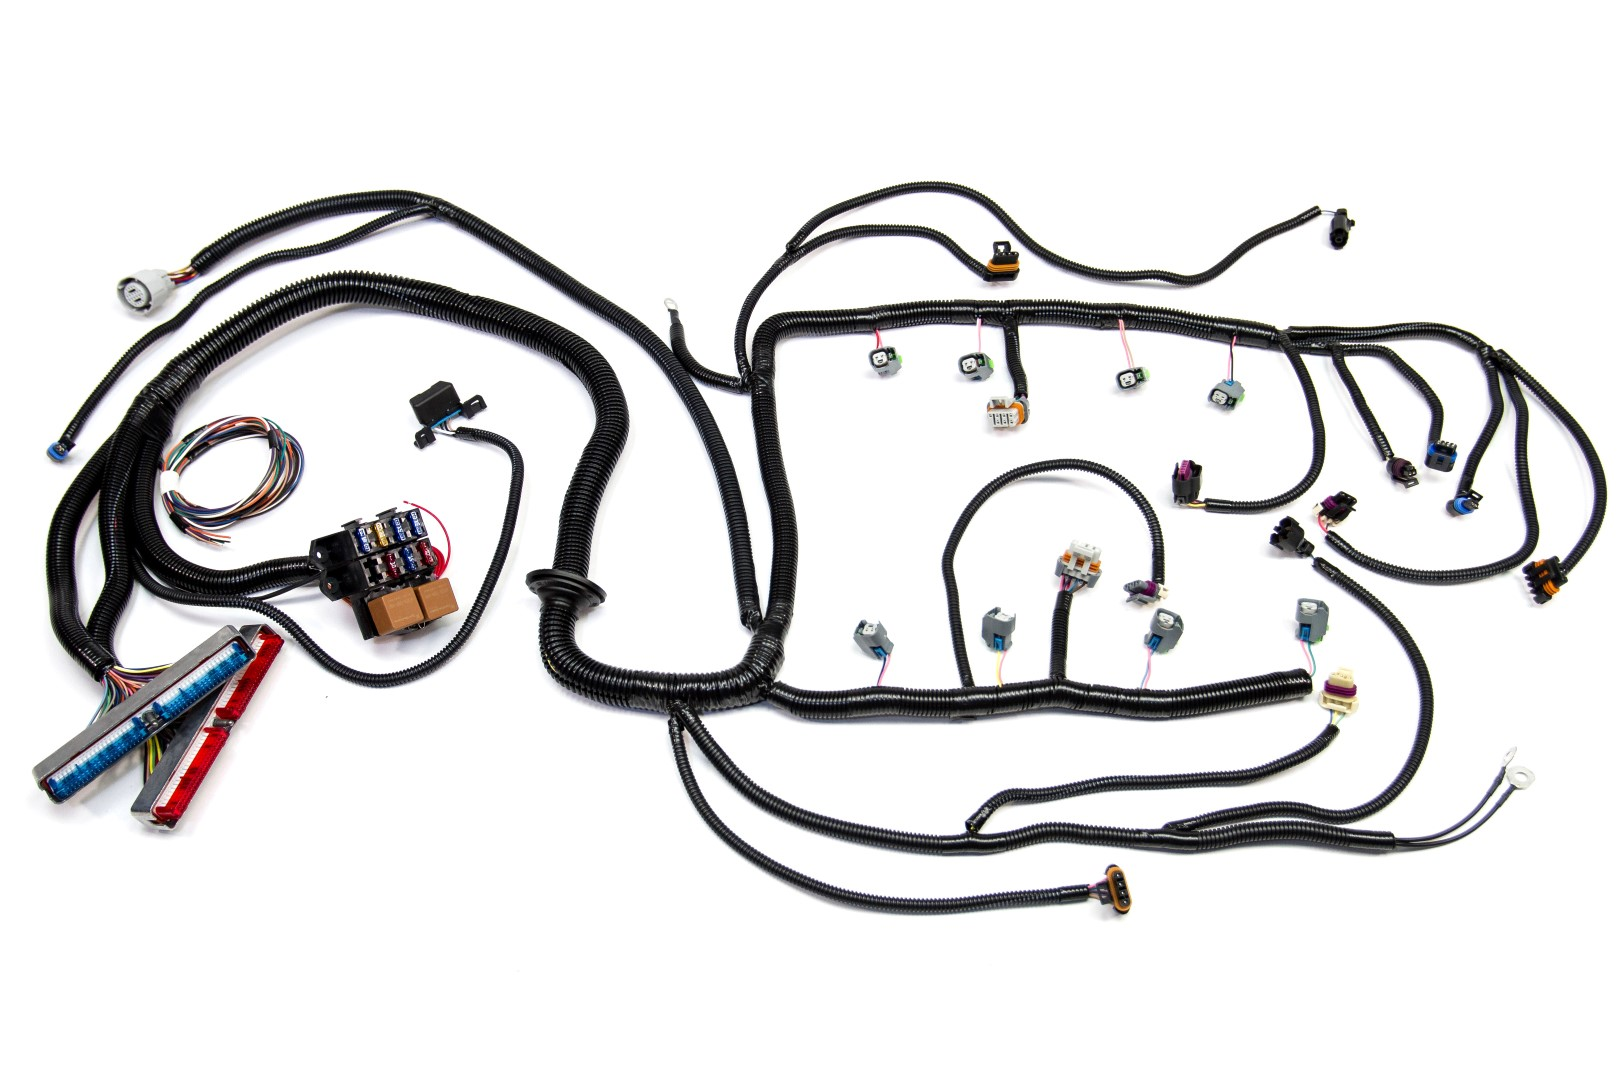 ls3 wiring harness instructions